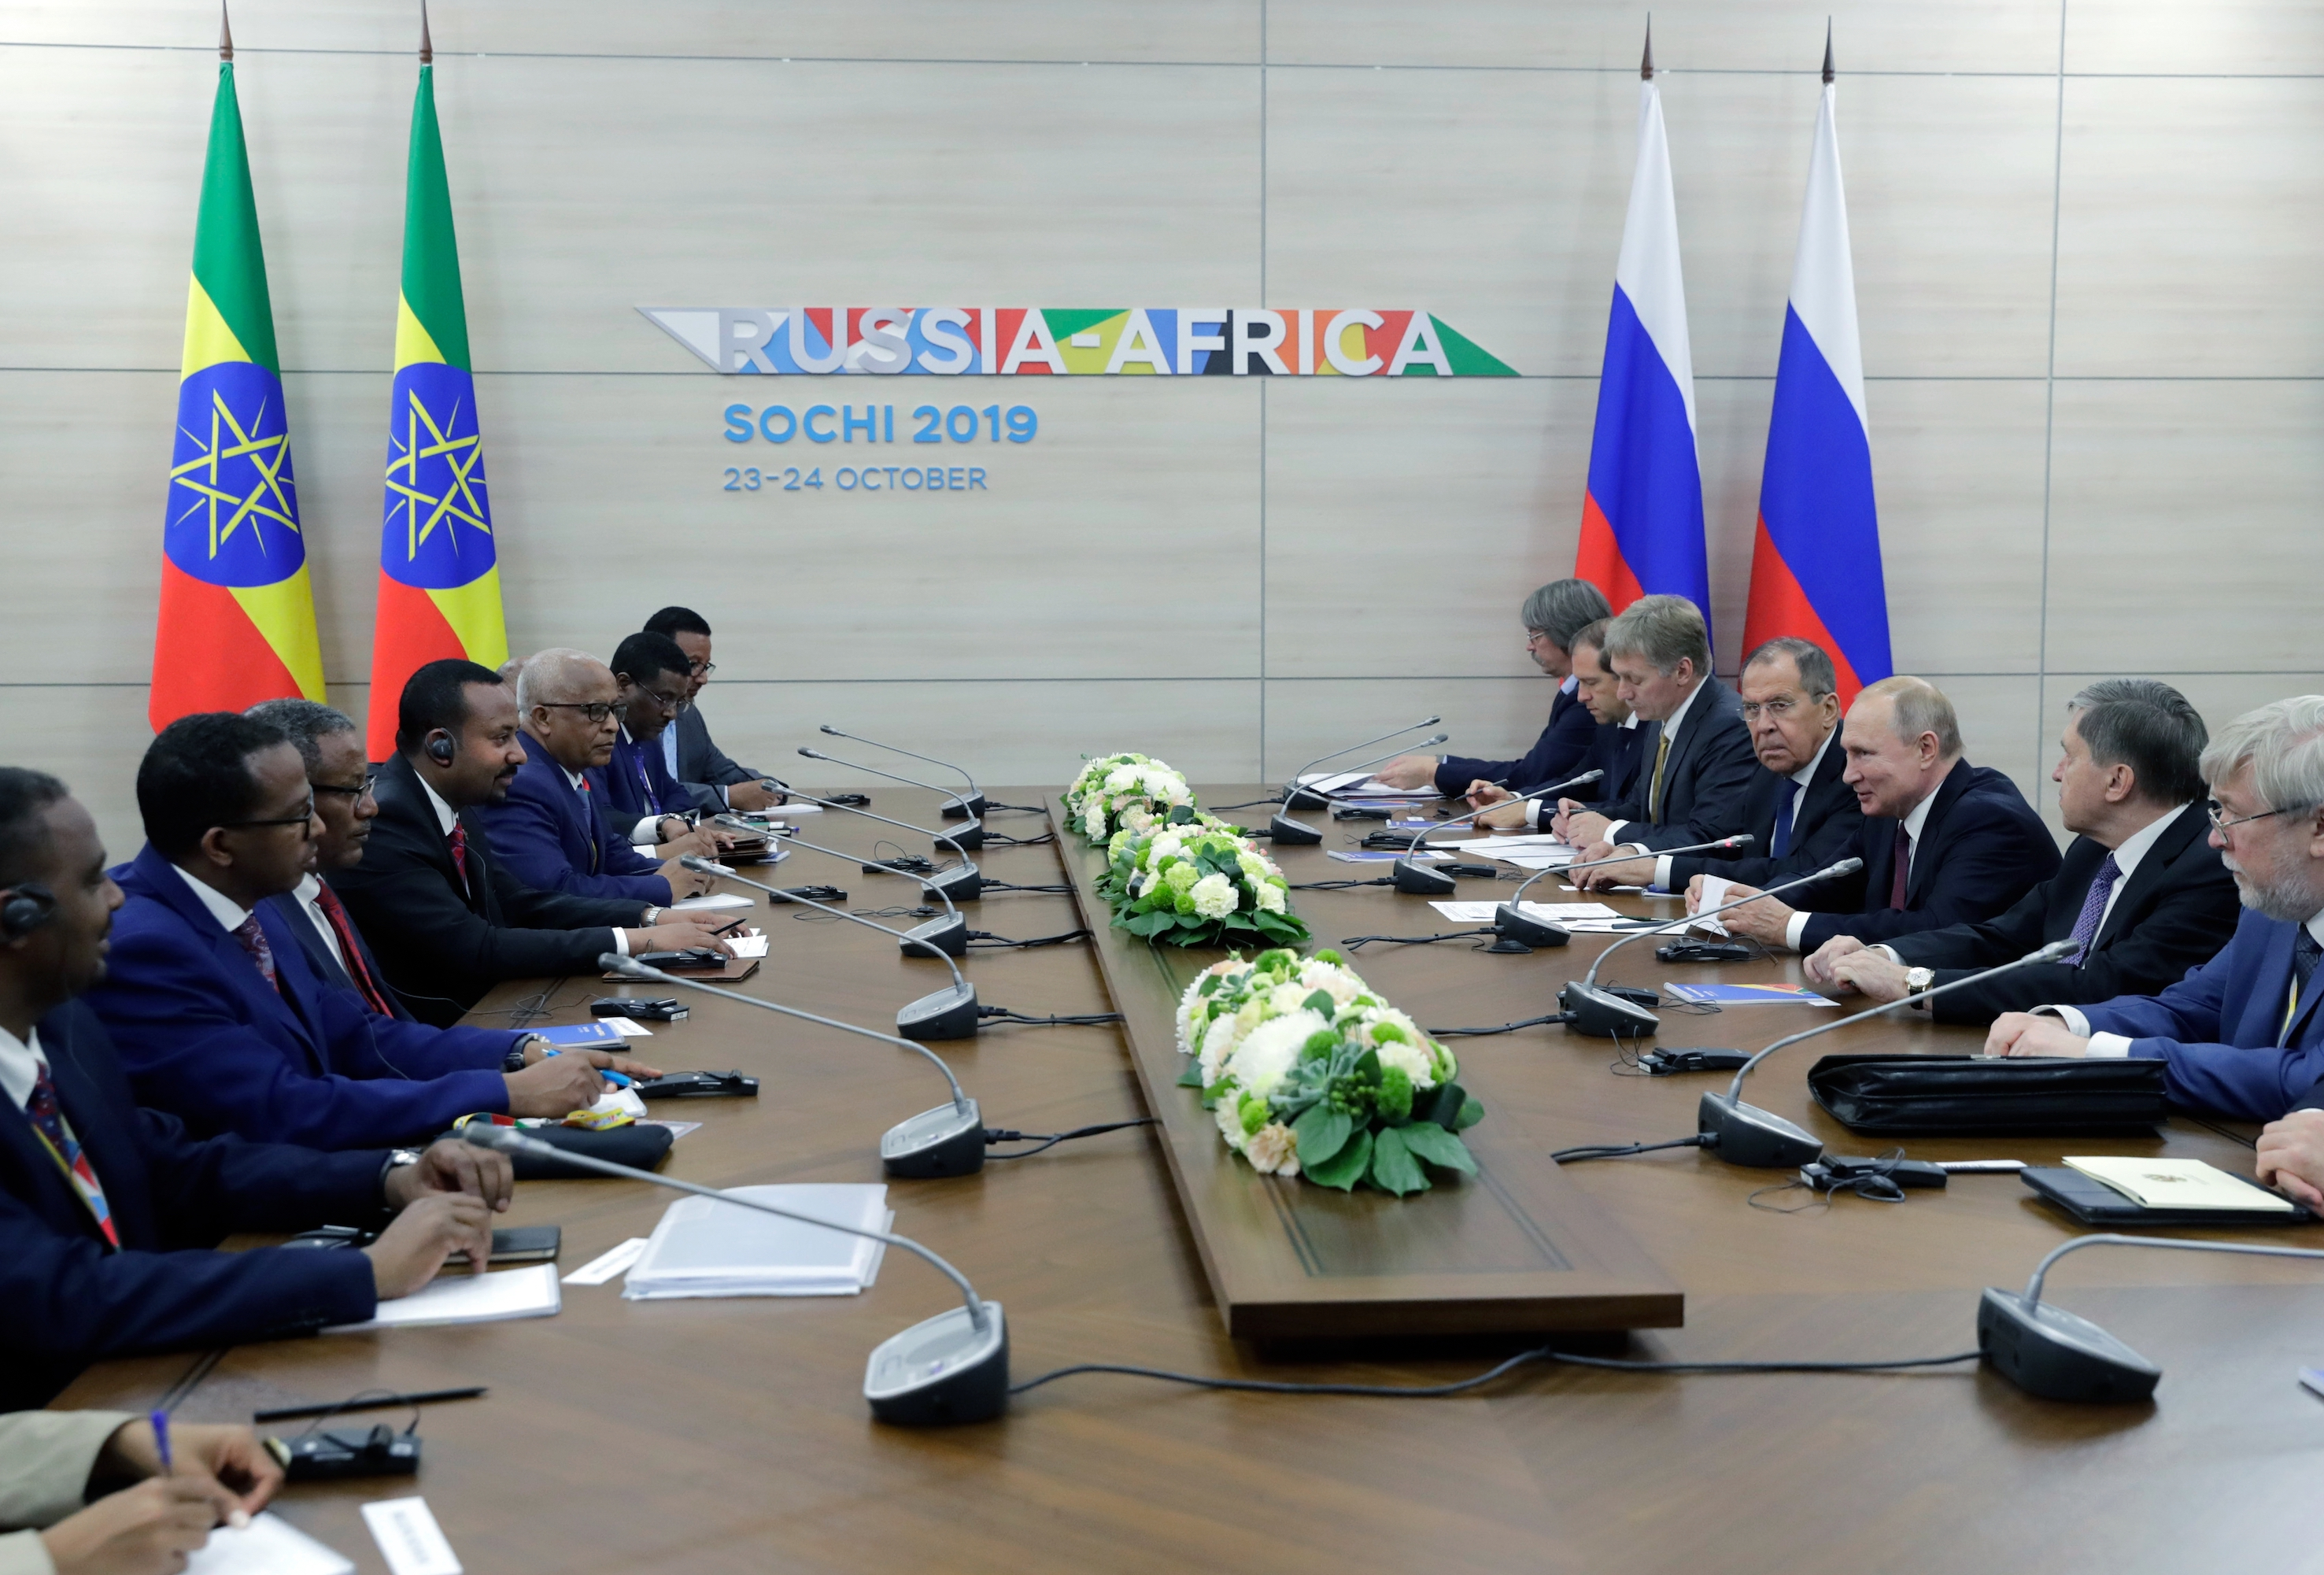 Reflections on the Russia-Africa Summit